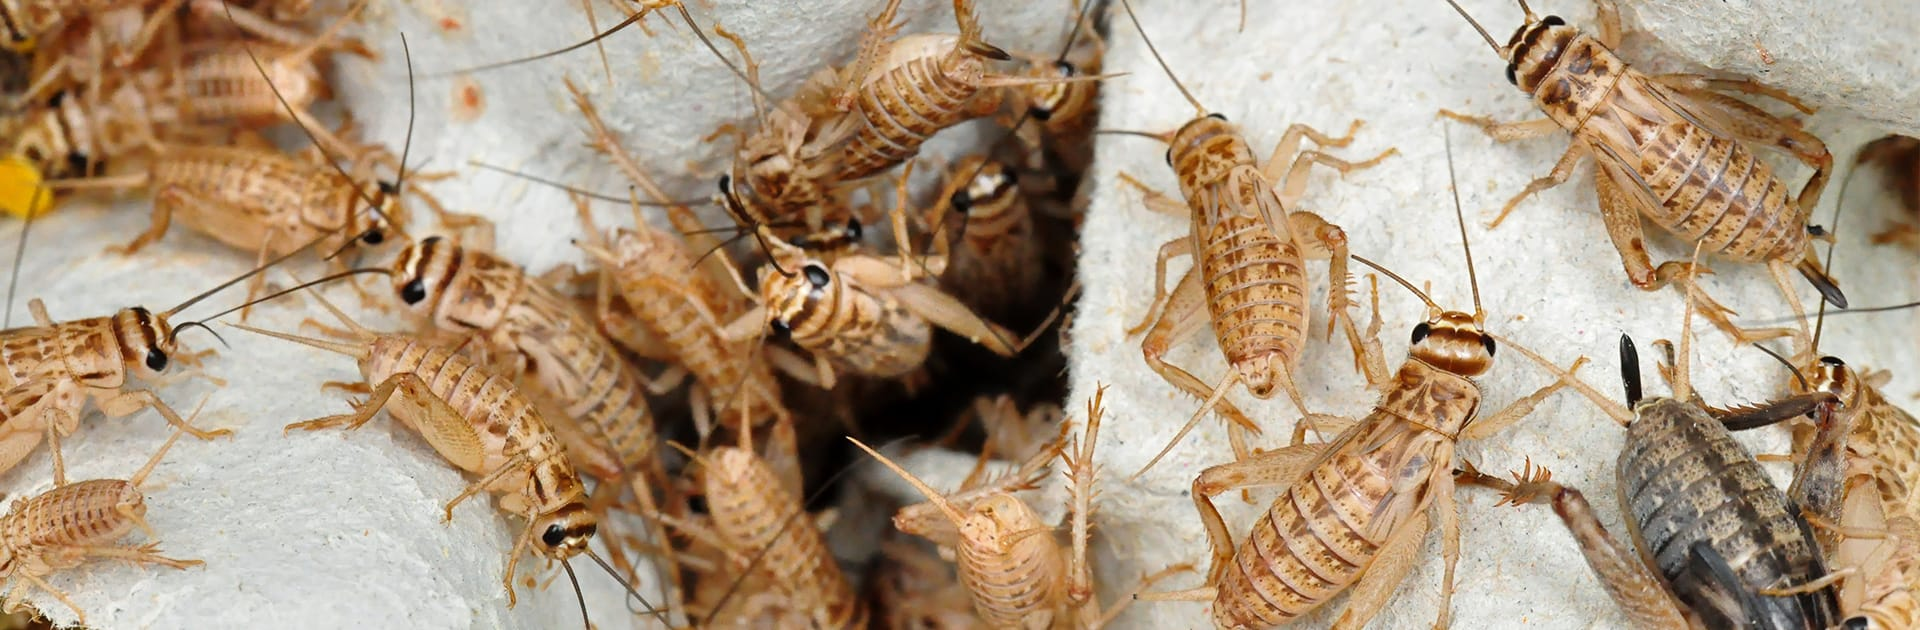 house crickets on cement